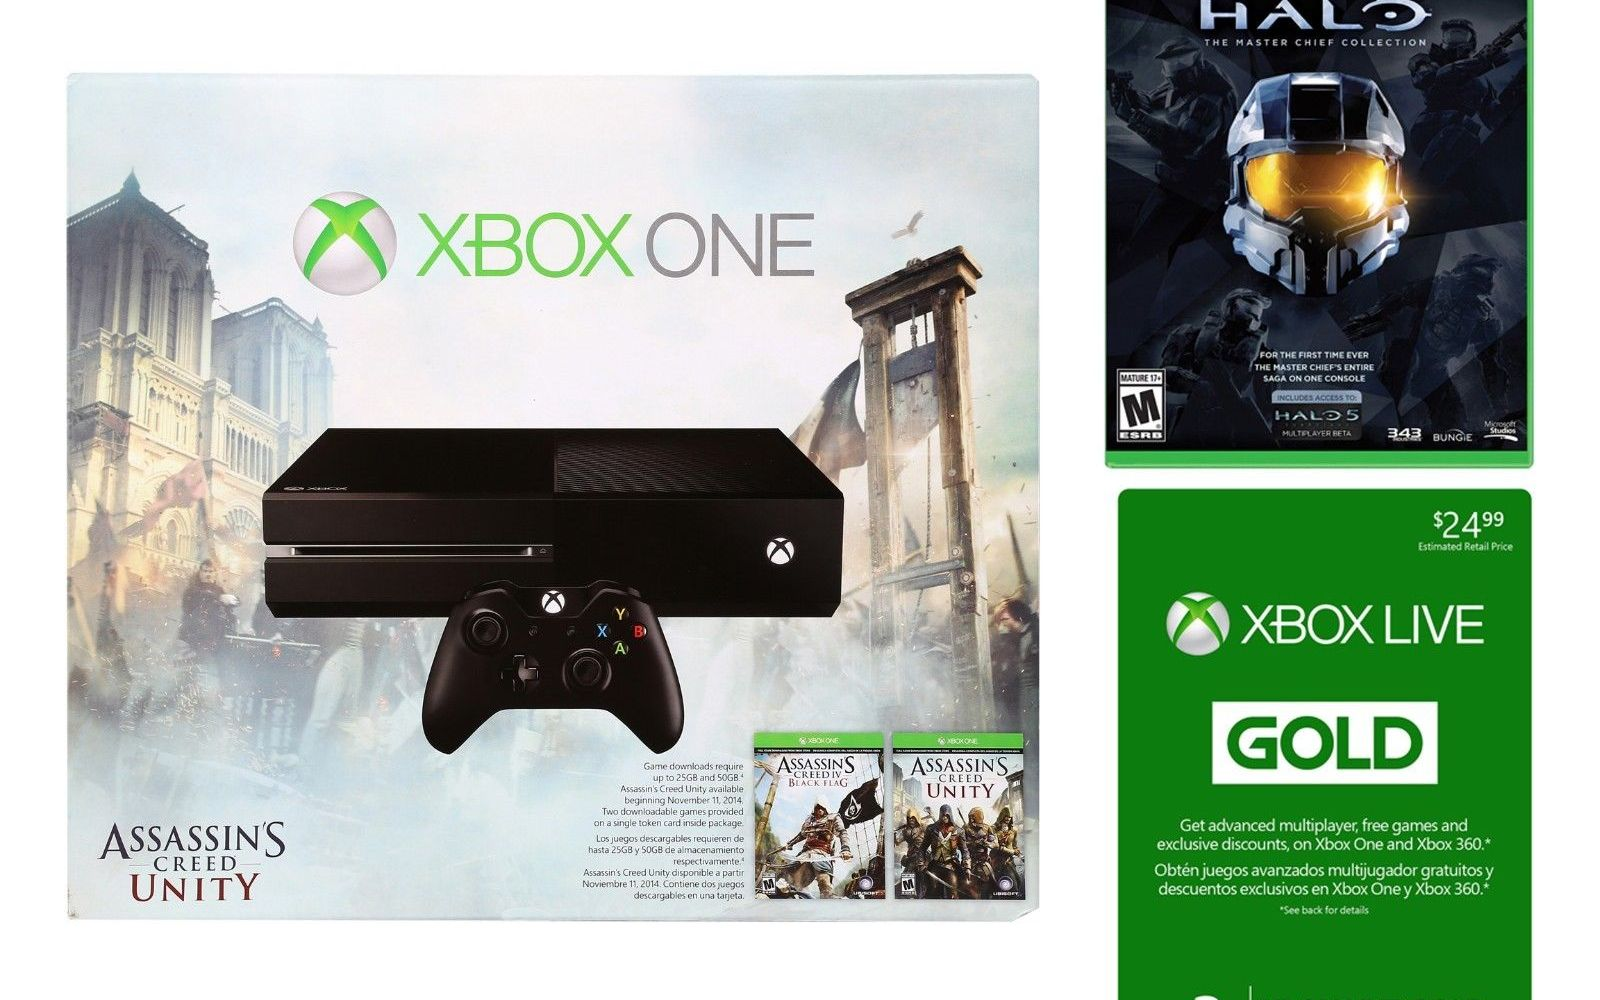 Xbox One AC Unity bundle w/ Halo MCC & 3-months Live $350, PS4 w/ Last of Us & 2 games $399 ($70+ in savings)